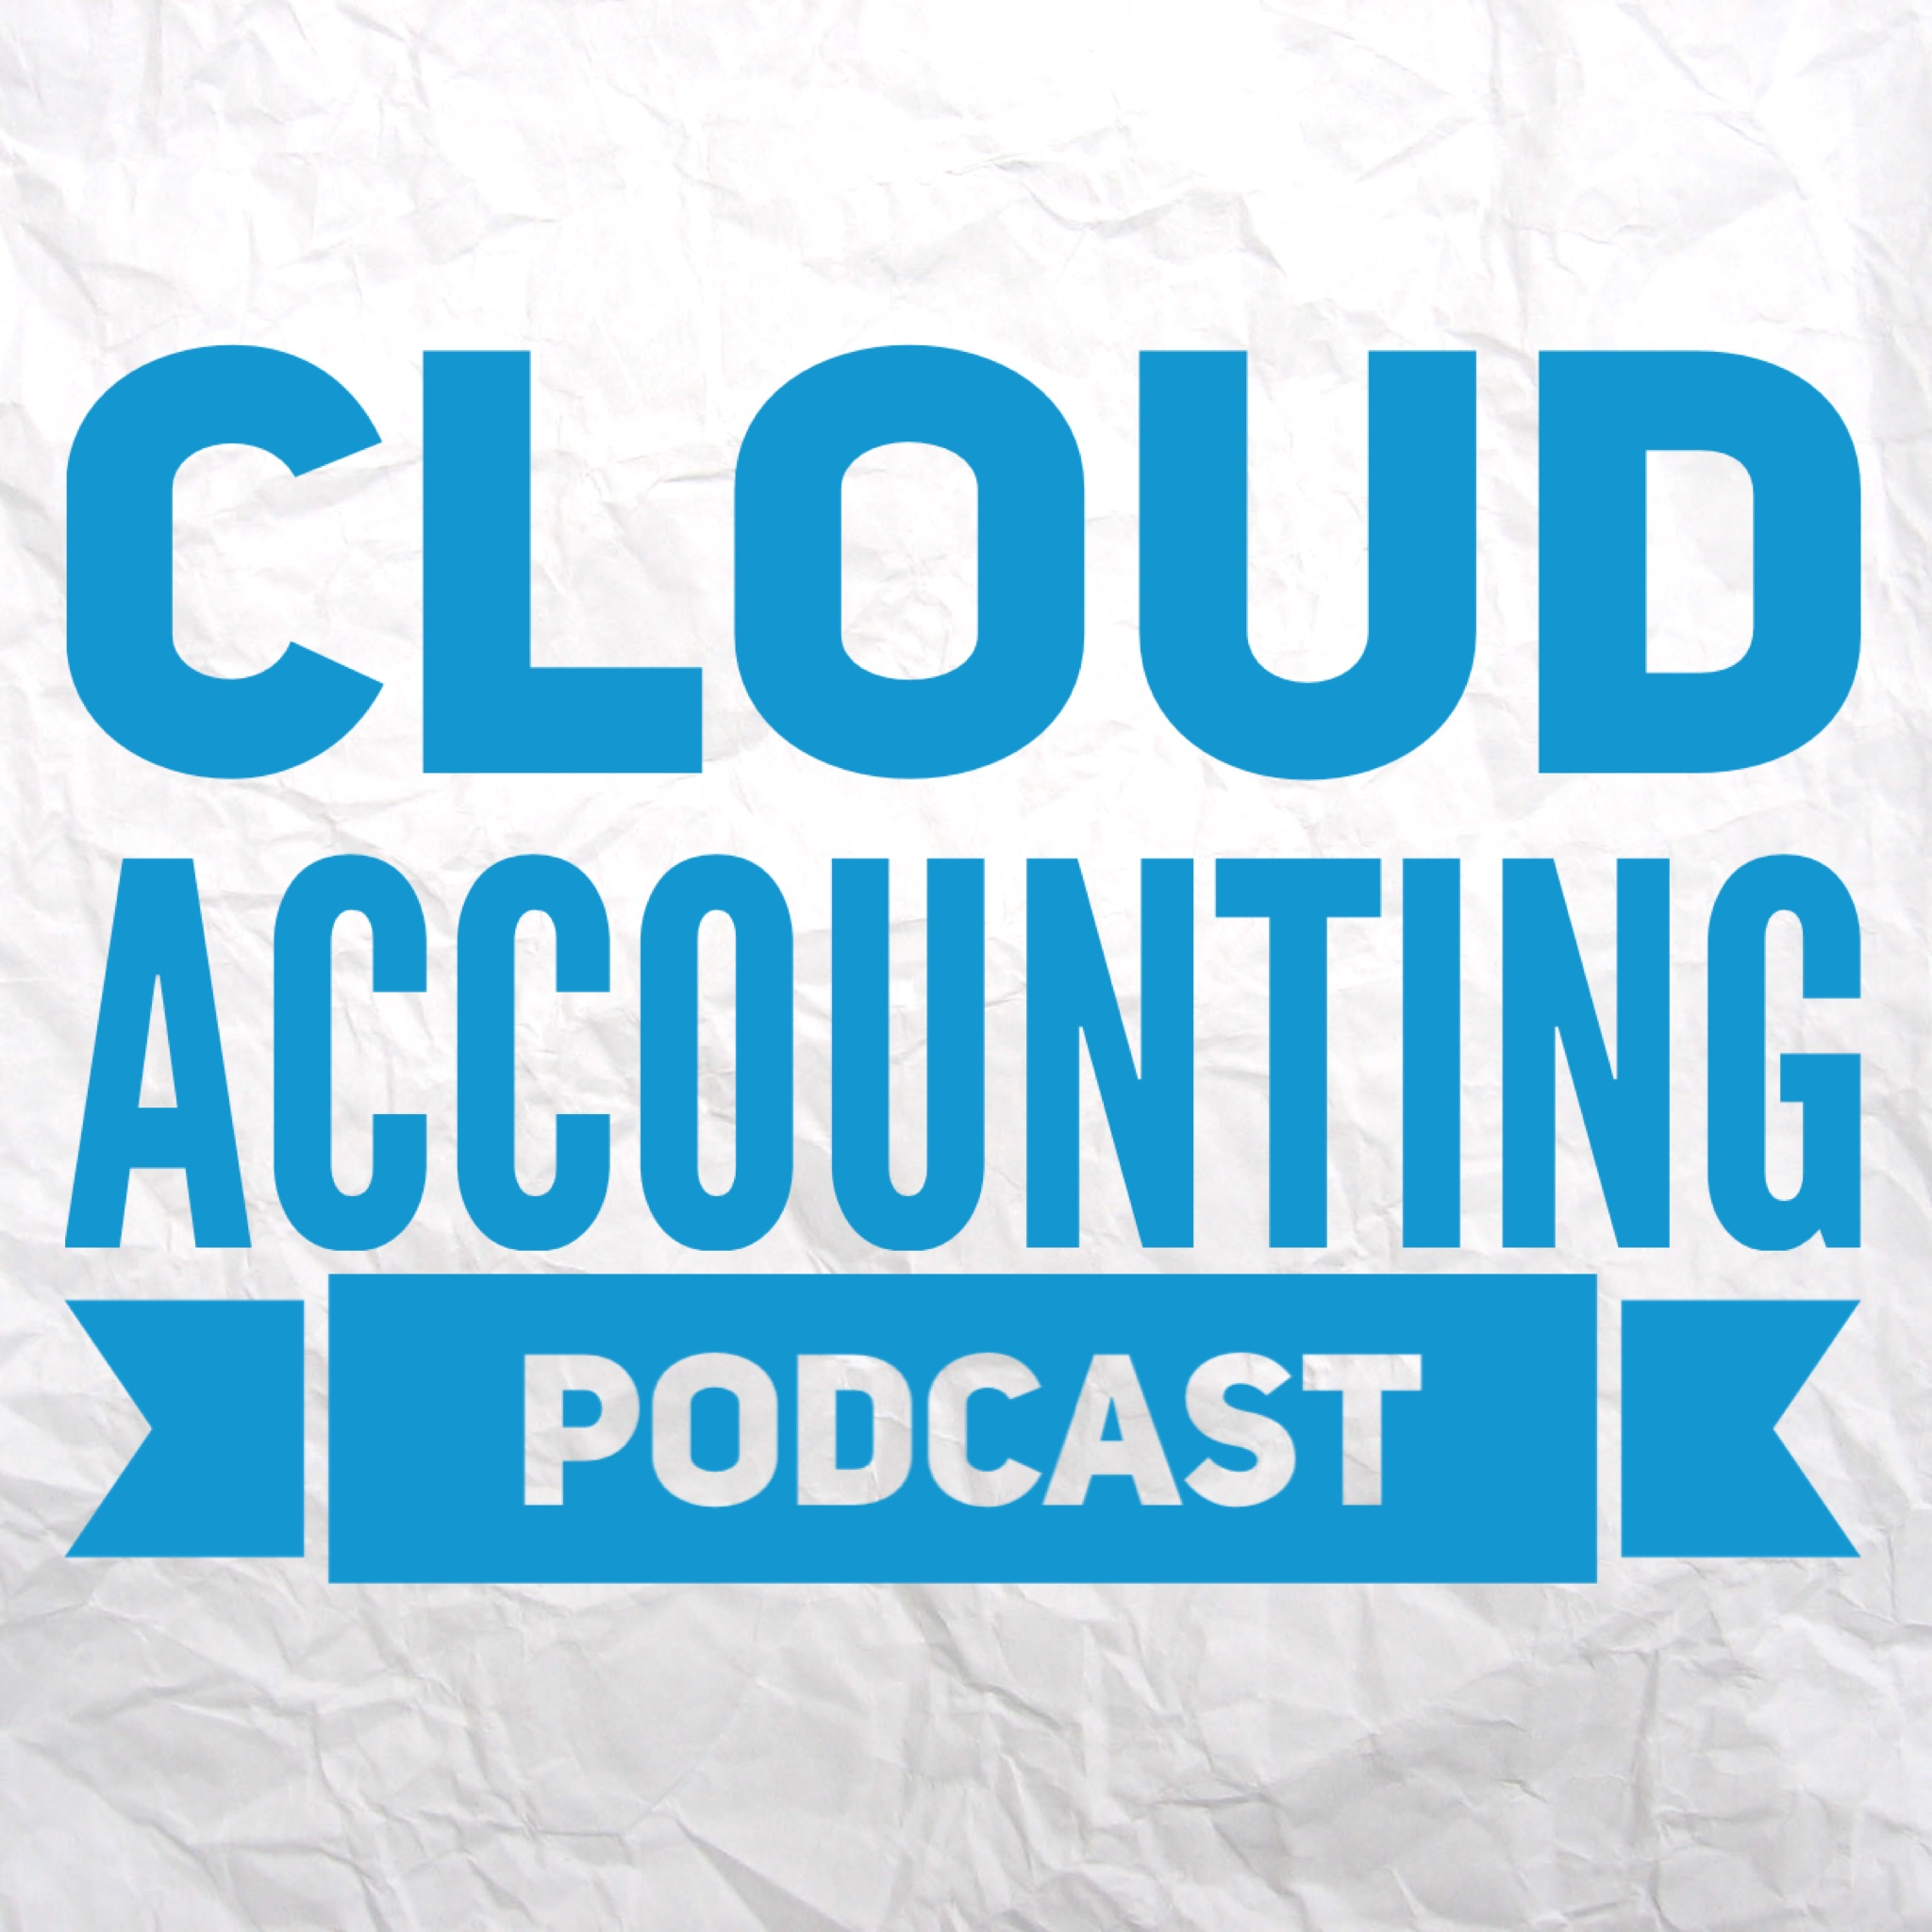 cloud-accounting-podcast-logo.jpg